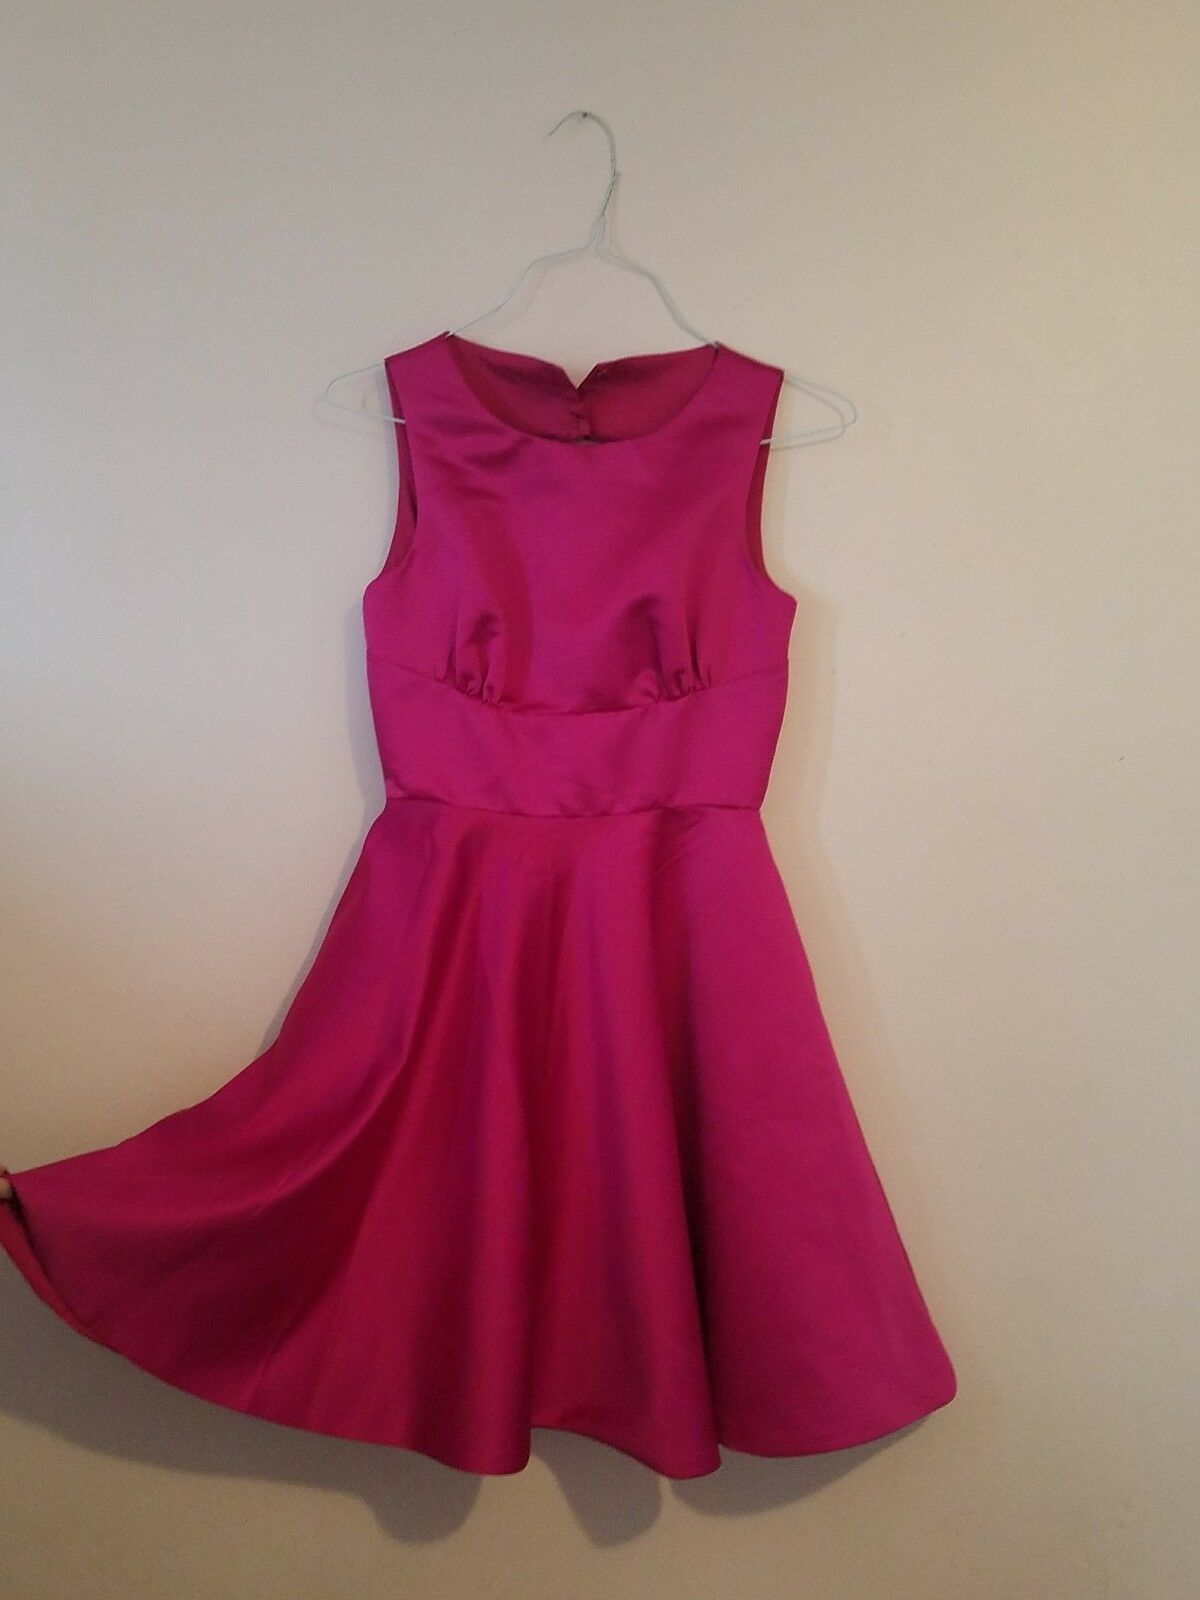 Badgley Mischka's juniors pink dress size 2 for special occasions